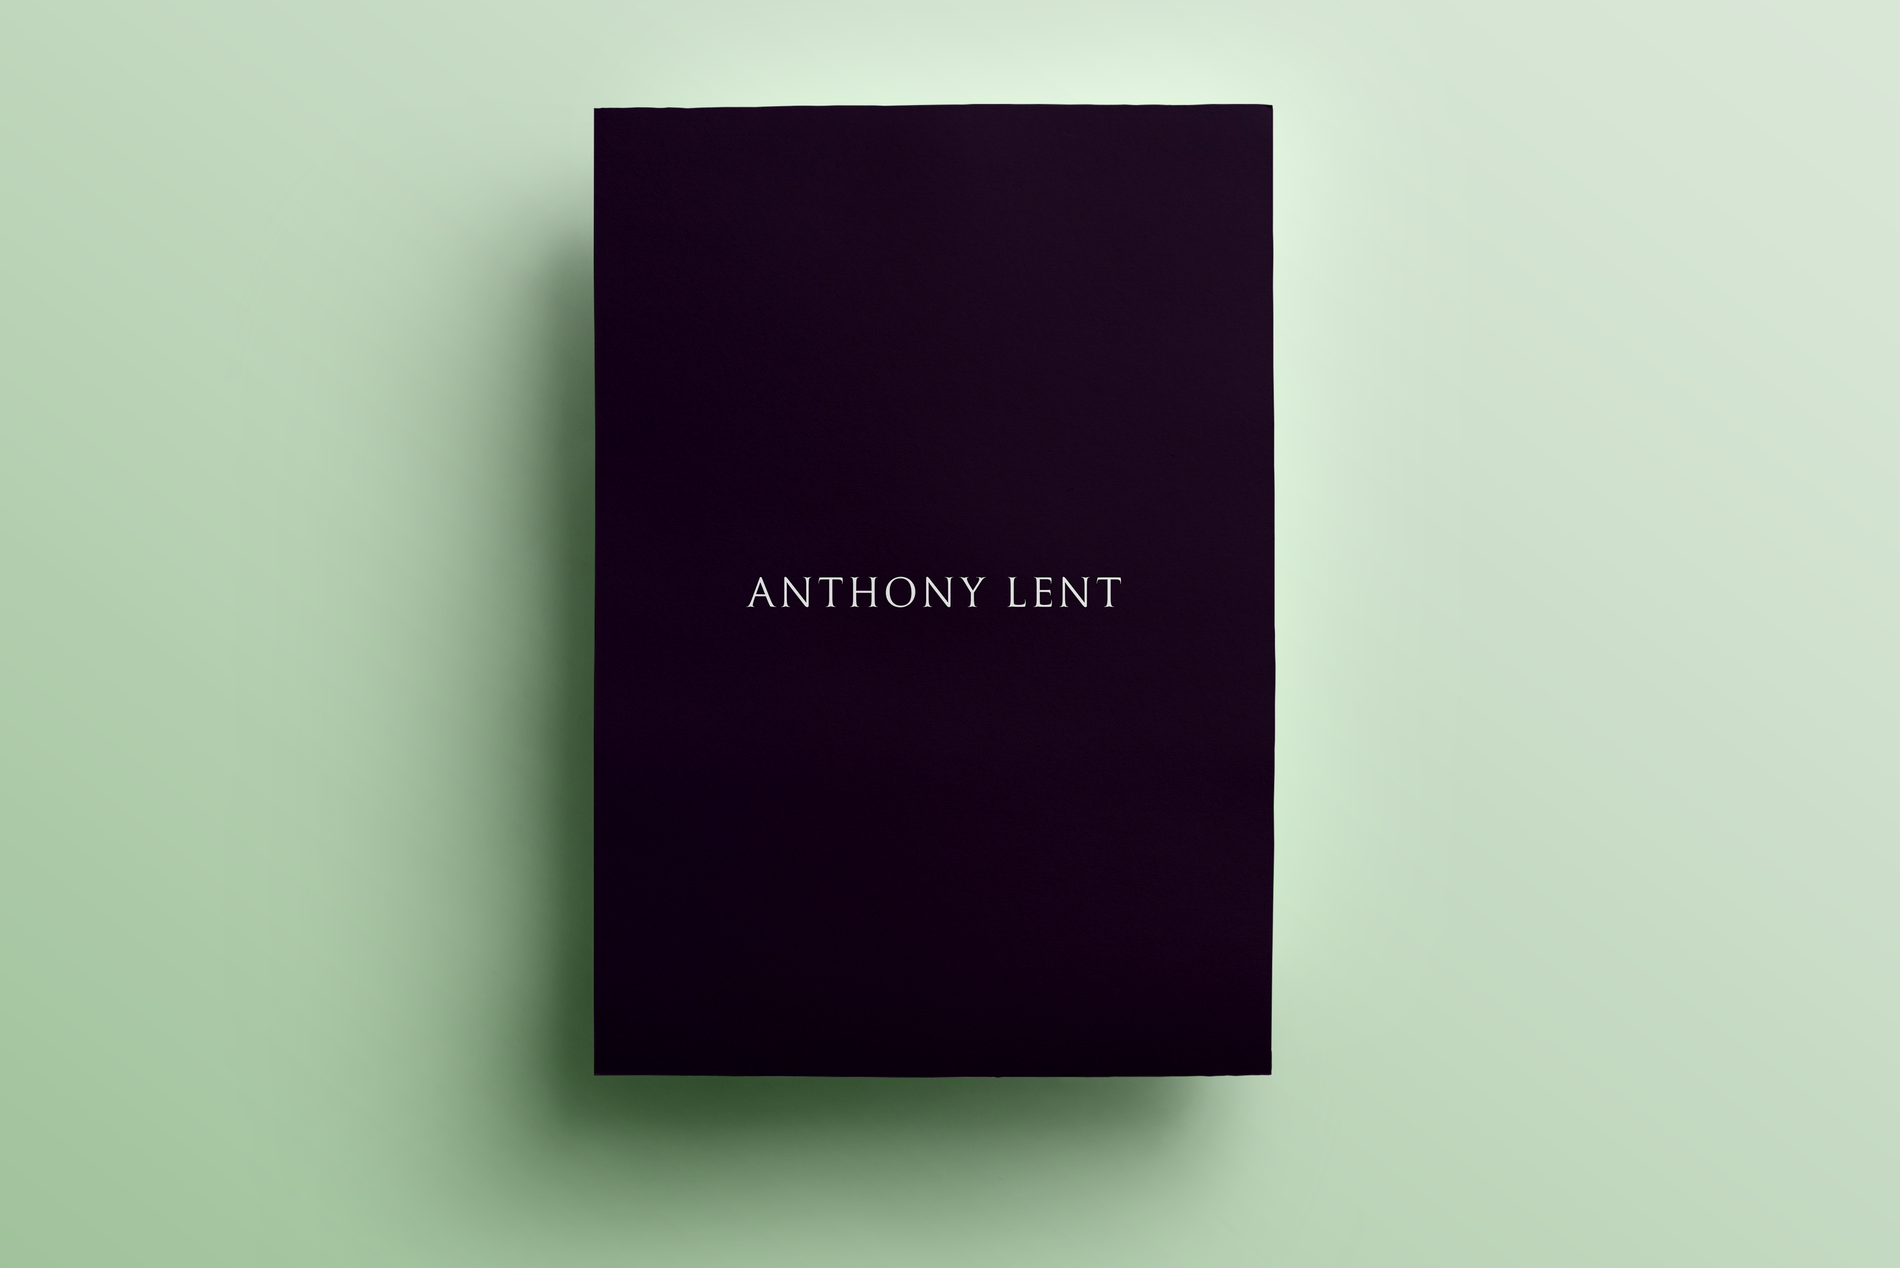 1_CaseStudy_AnthonyLent_Brochure-cover.png